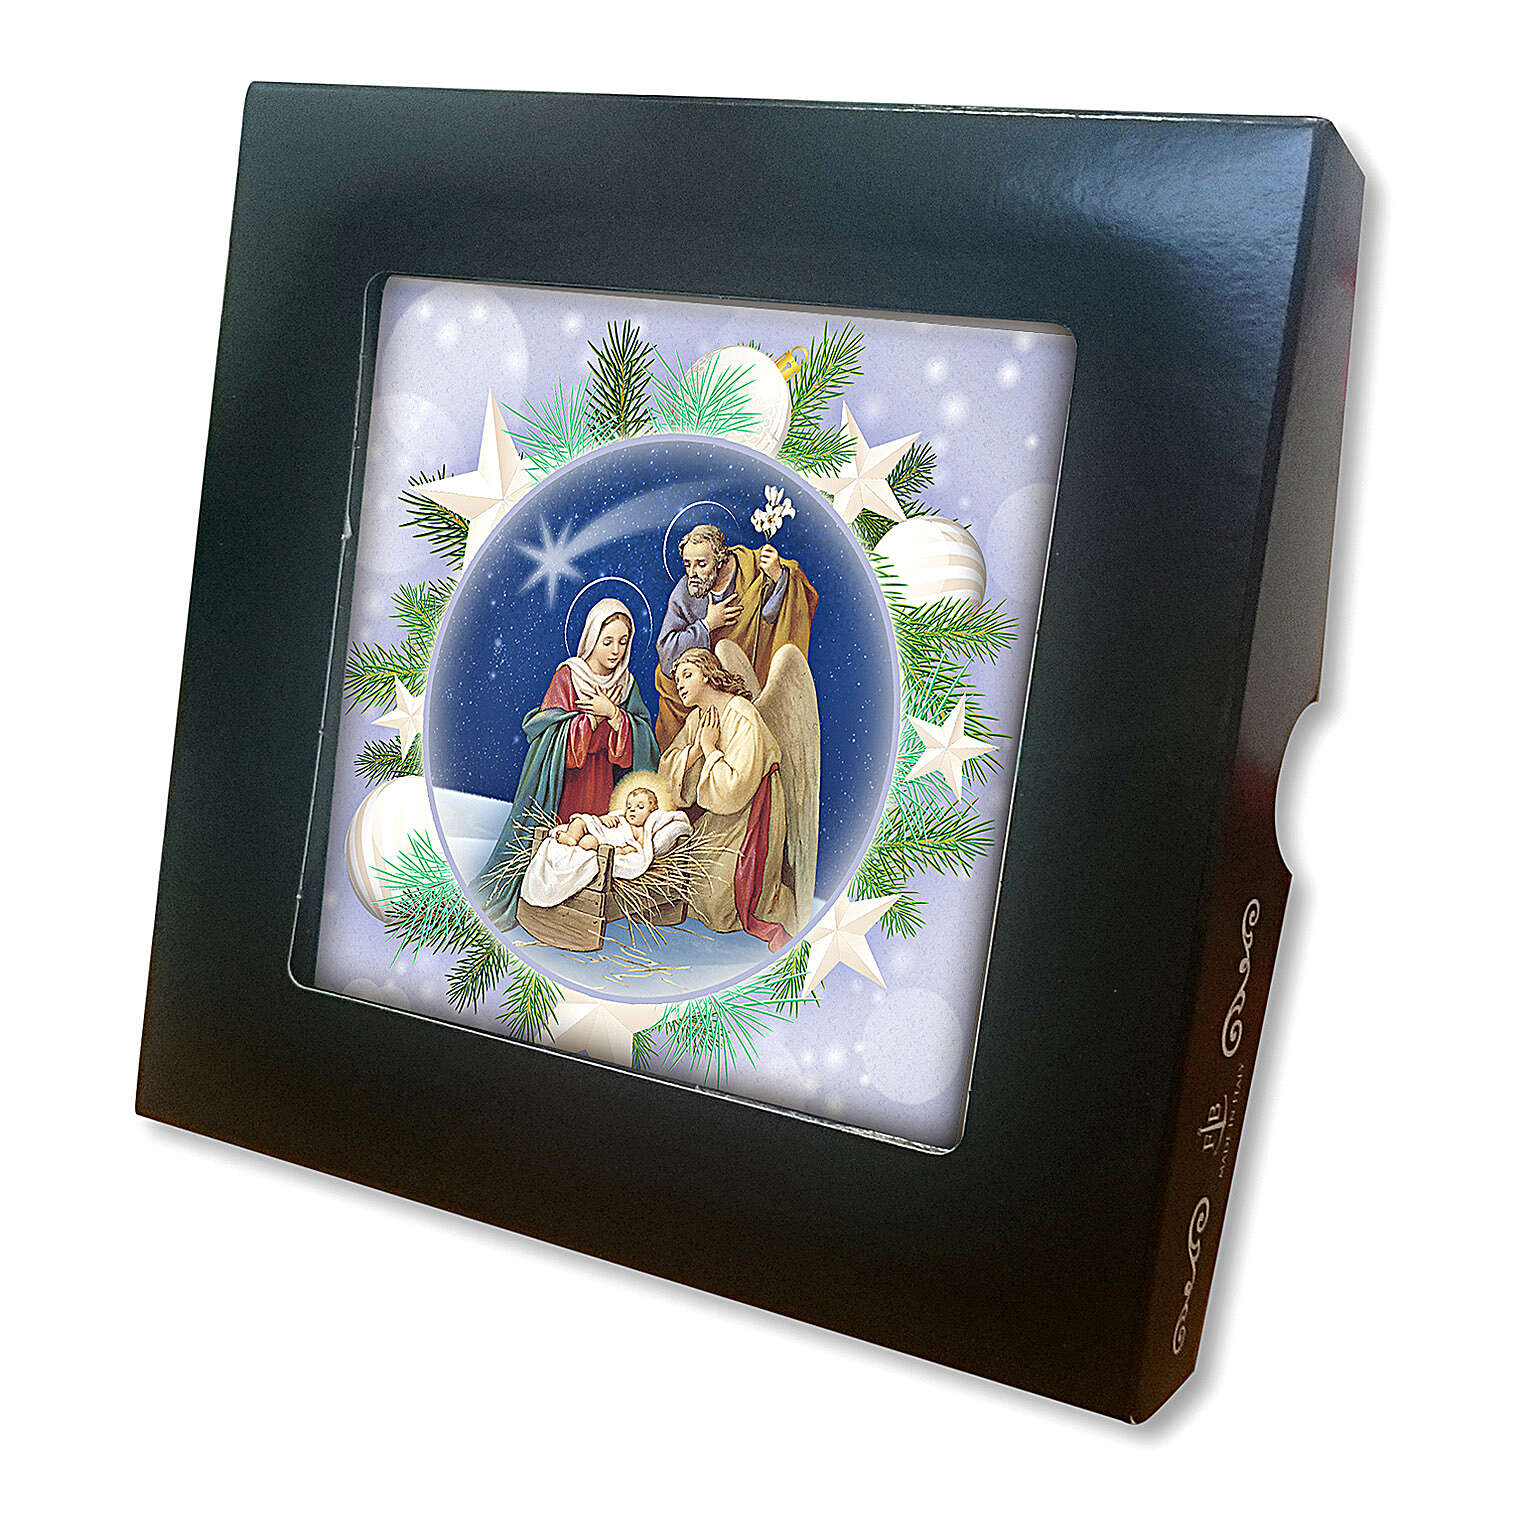 Ceramic tile with printed Sacred Family image and back prayer 3